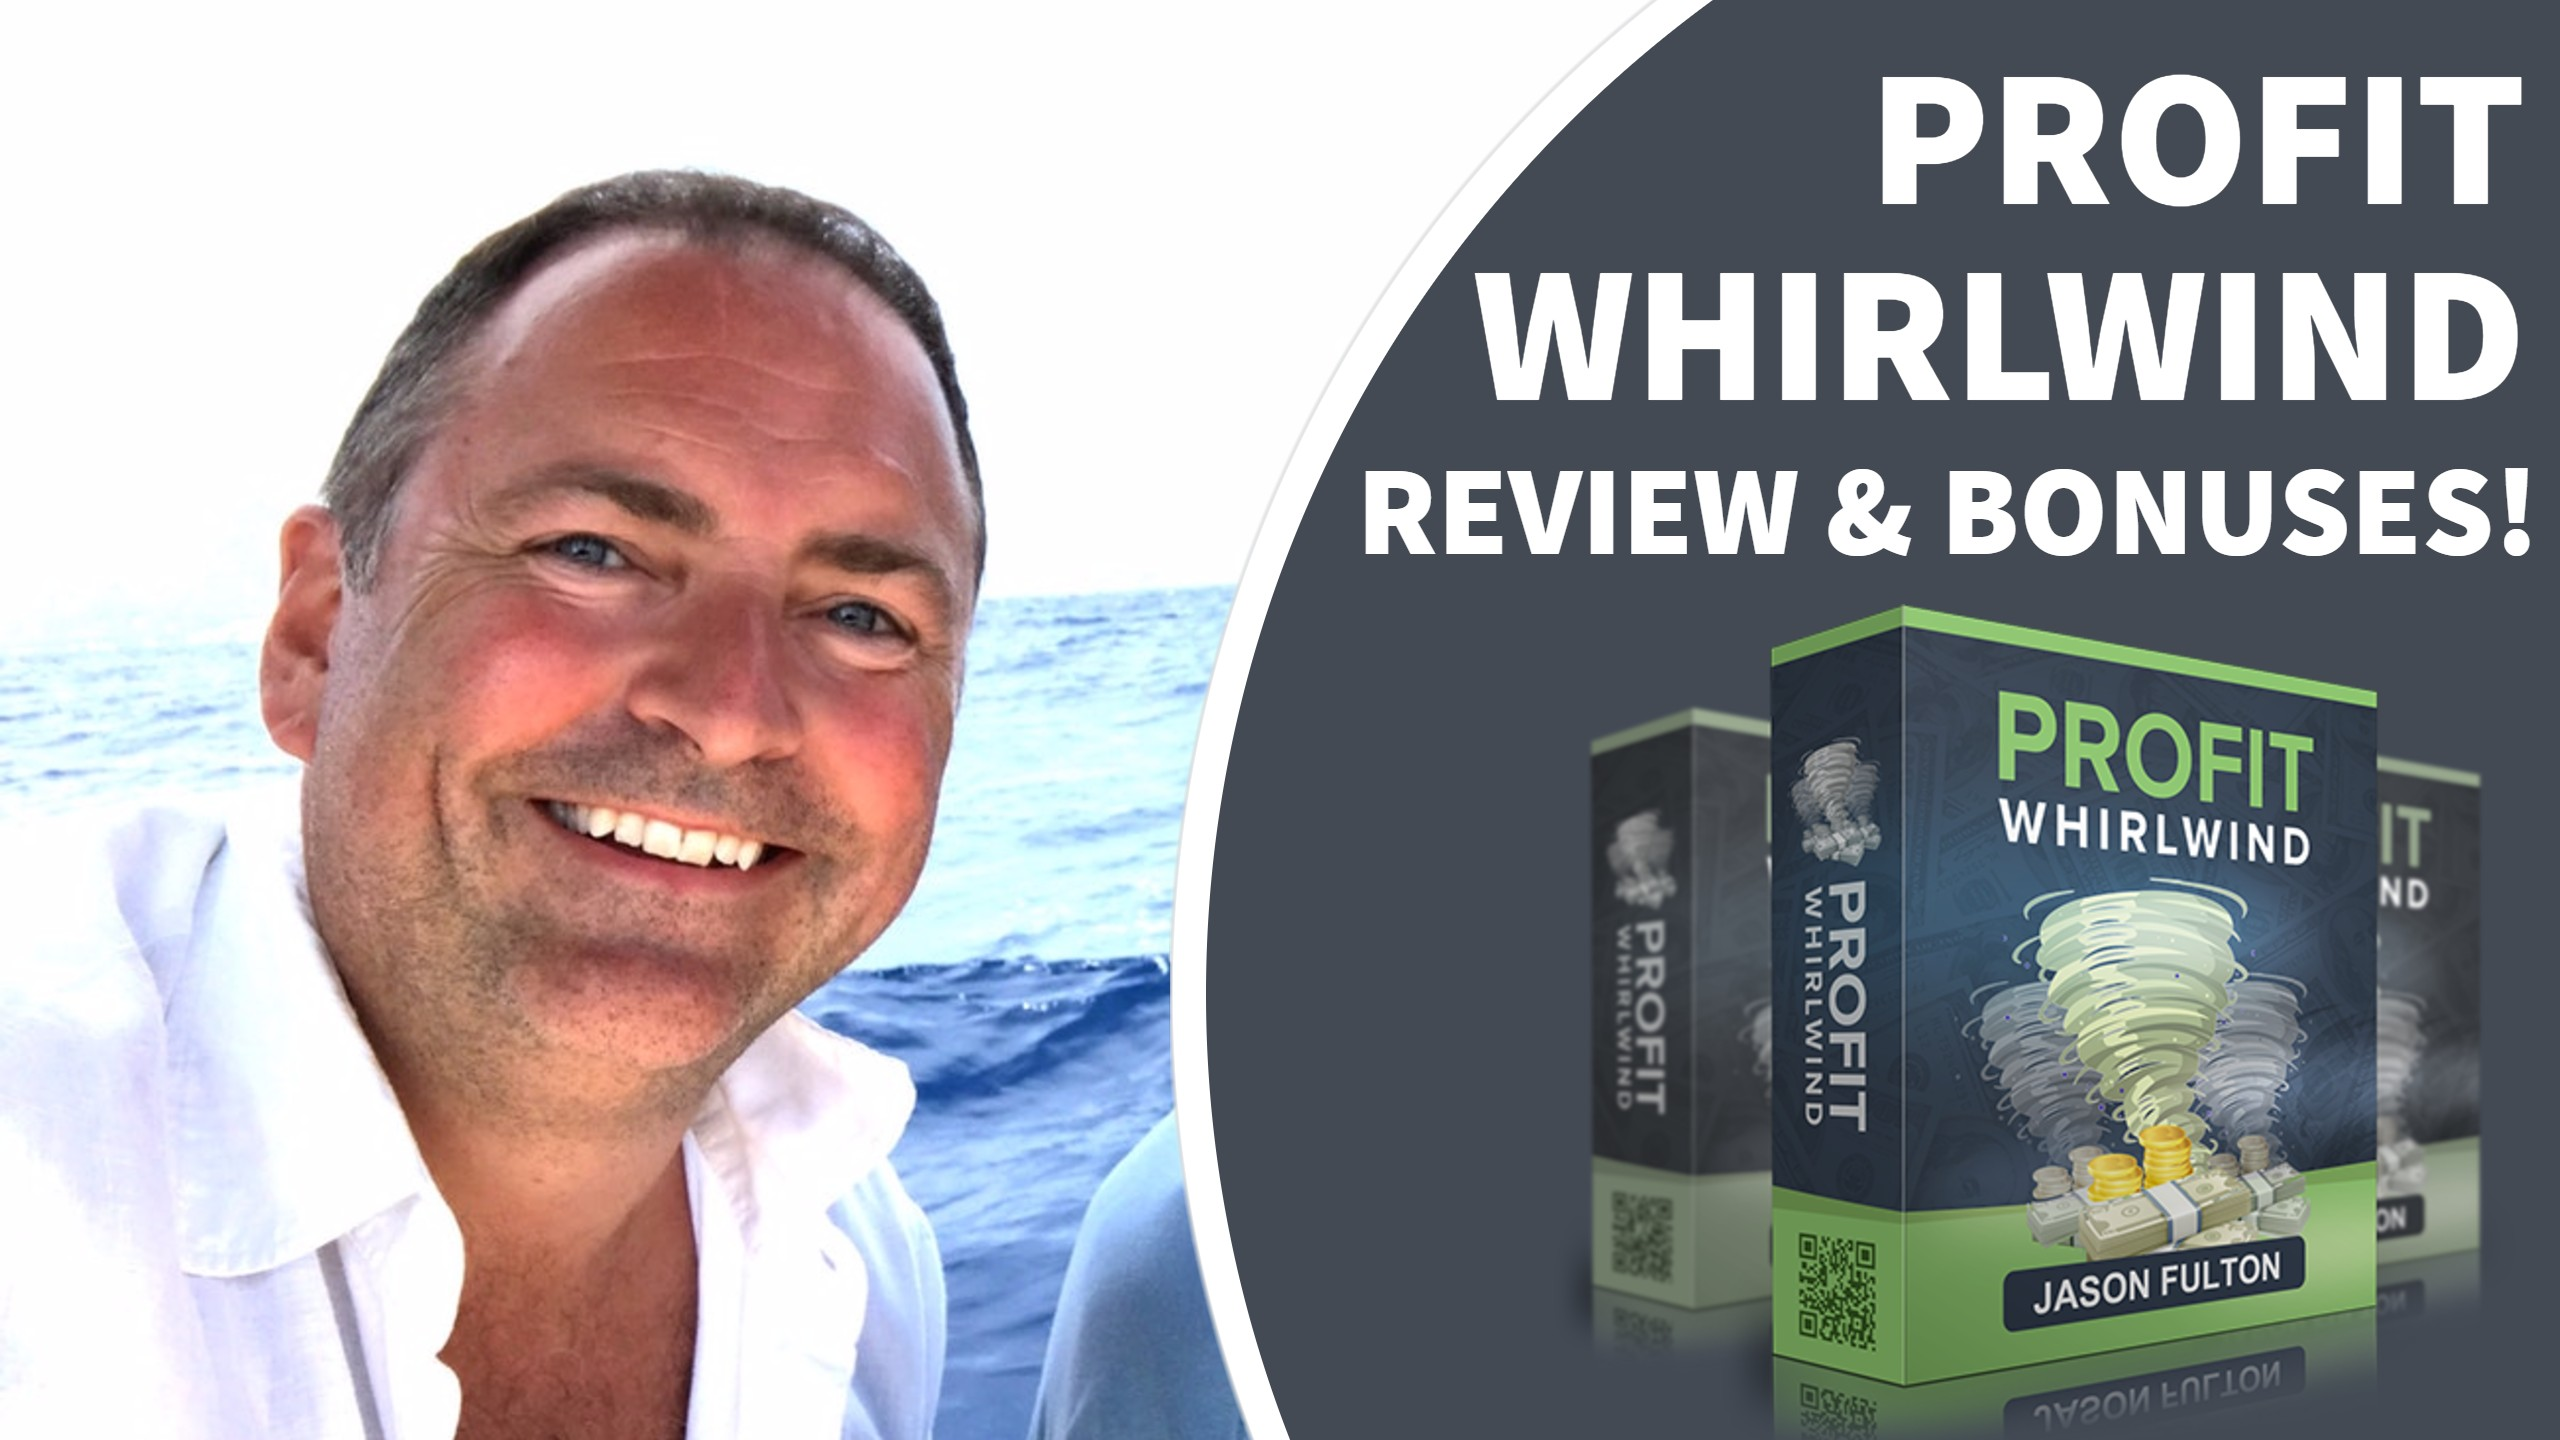 Profit Whirlwind Review & Bonuses